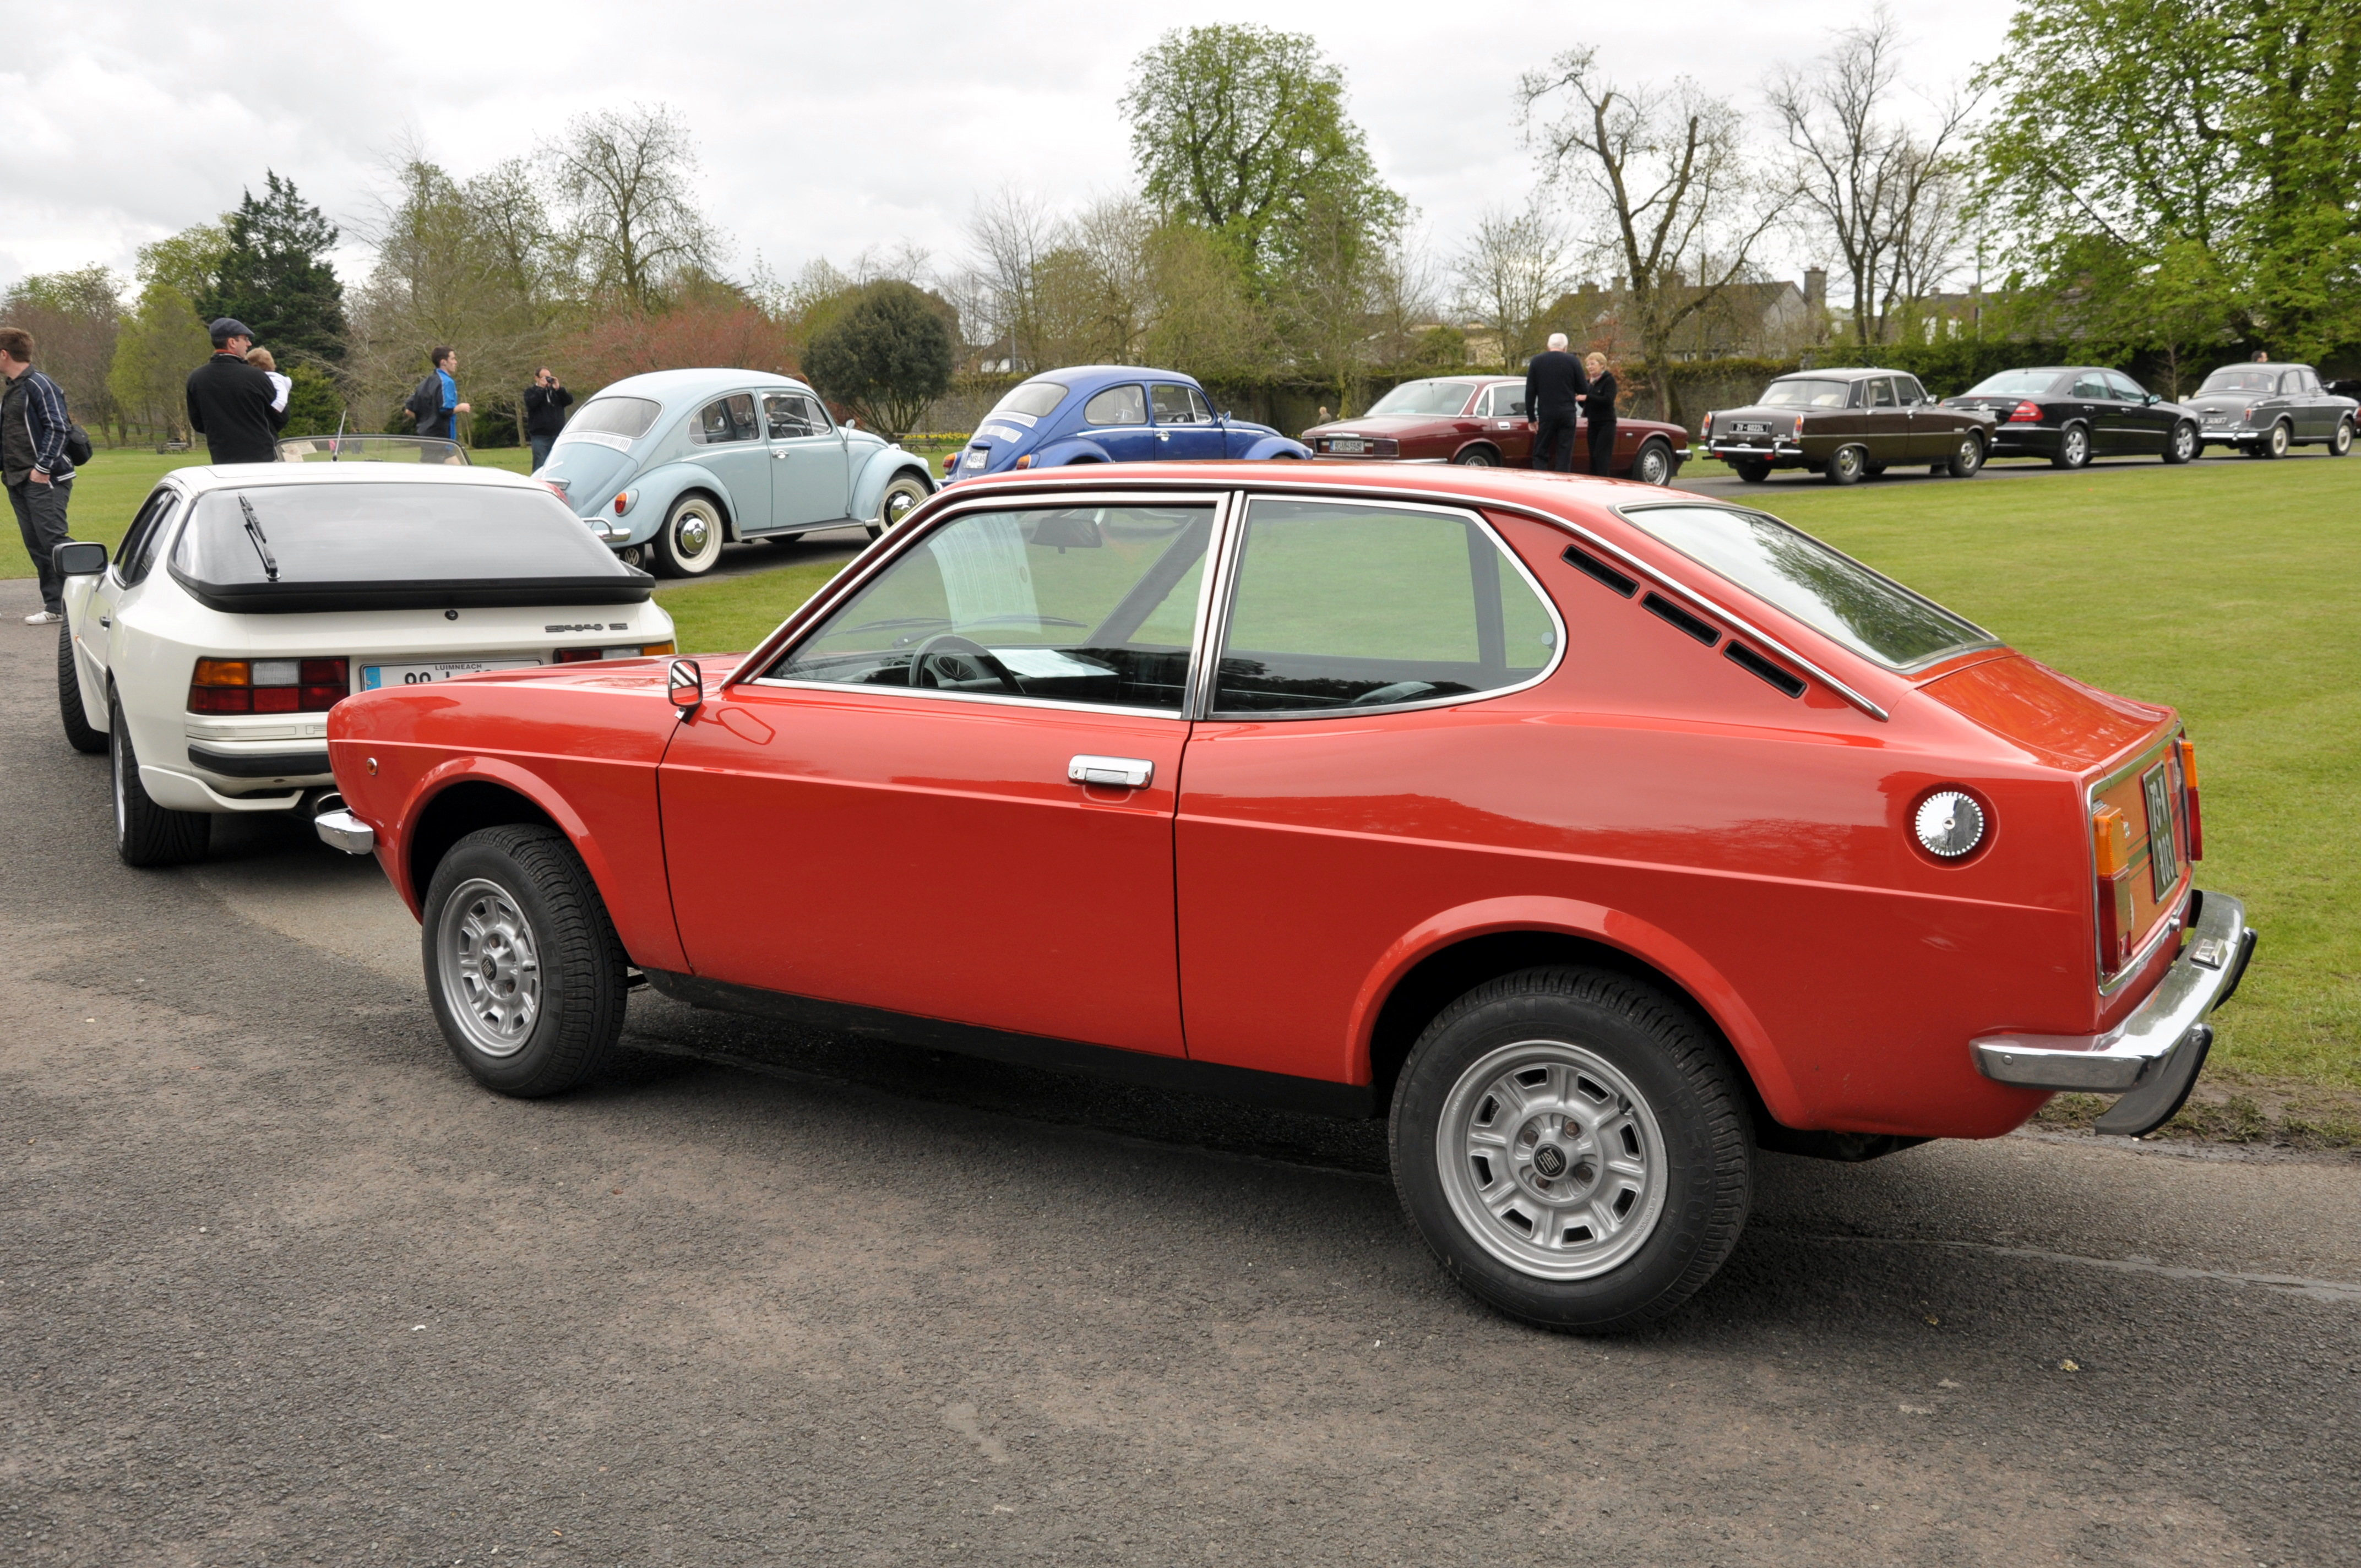 File:FIat 128 Coupe.jpg - Wikimedia Commons